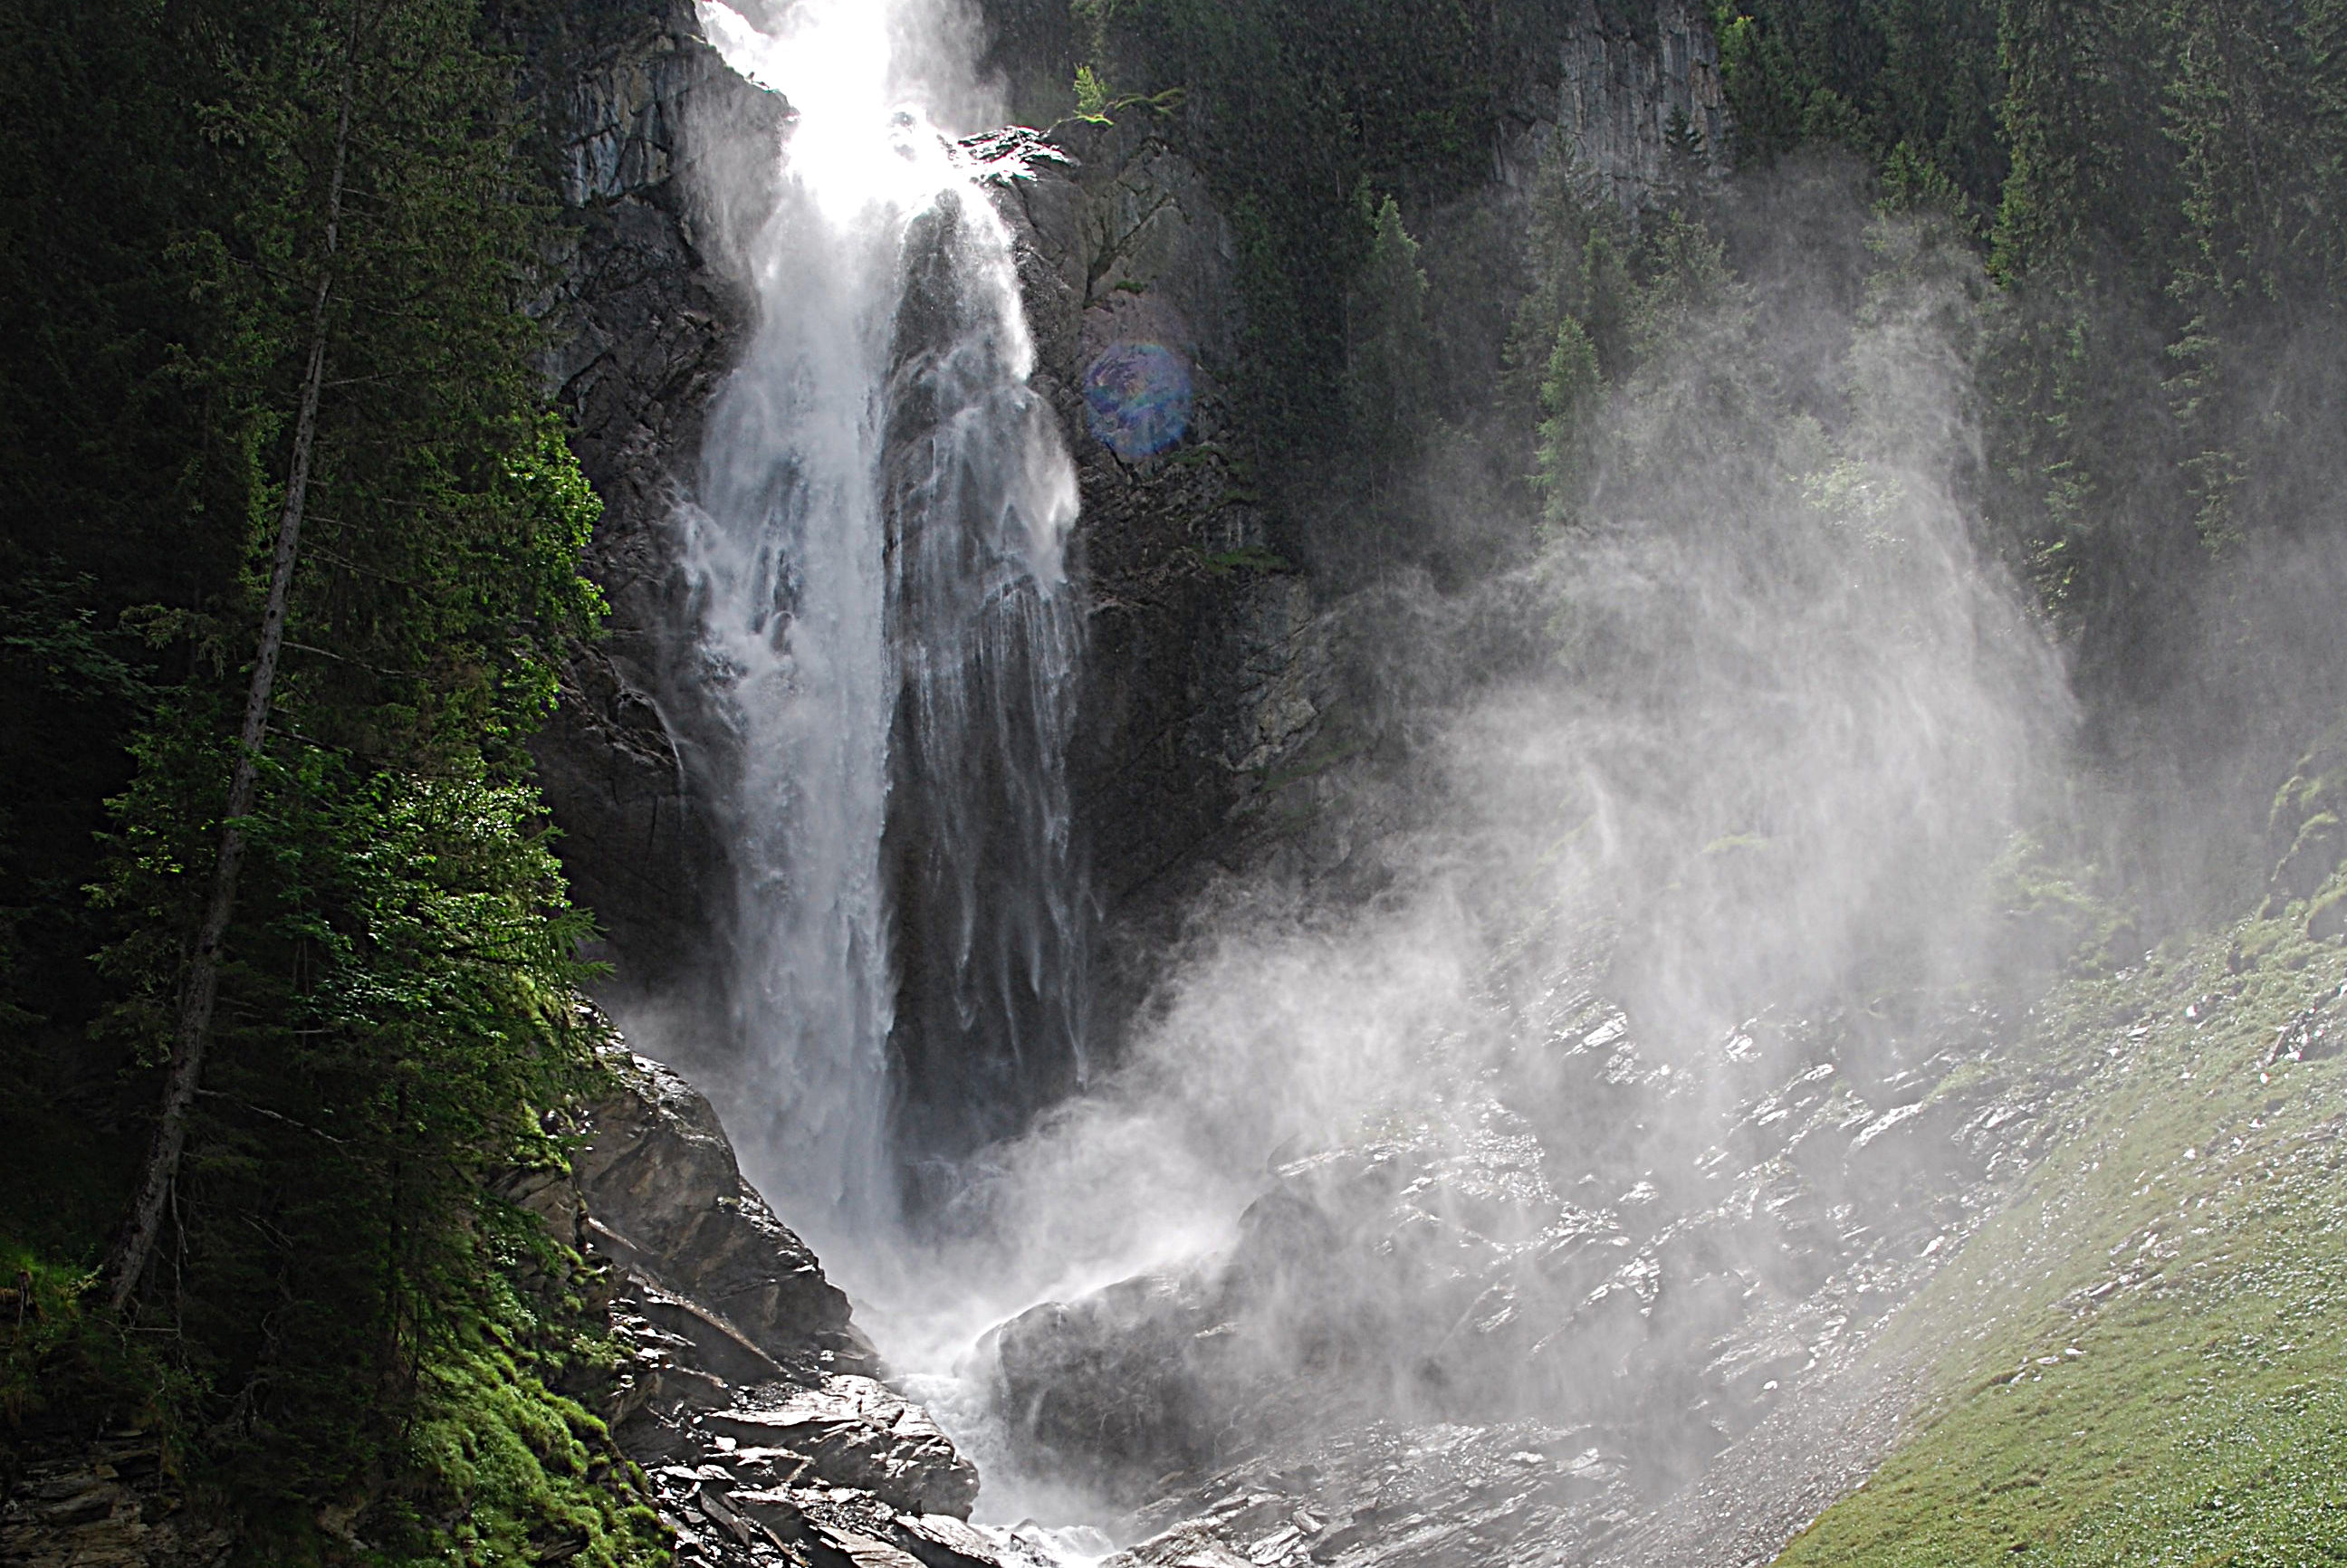 Iffigfall at Lenk